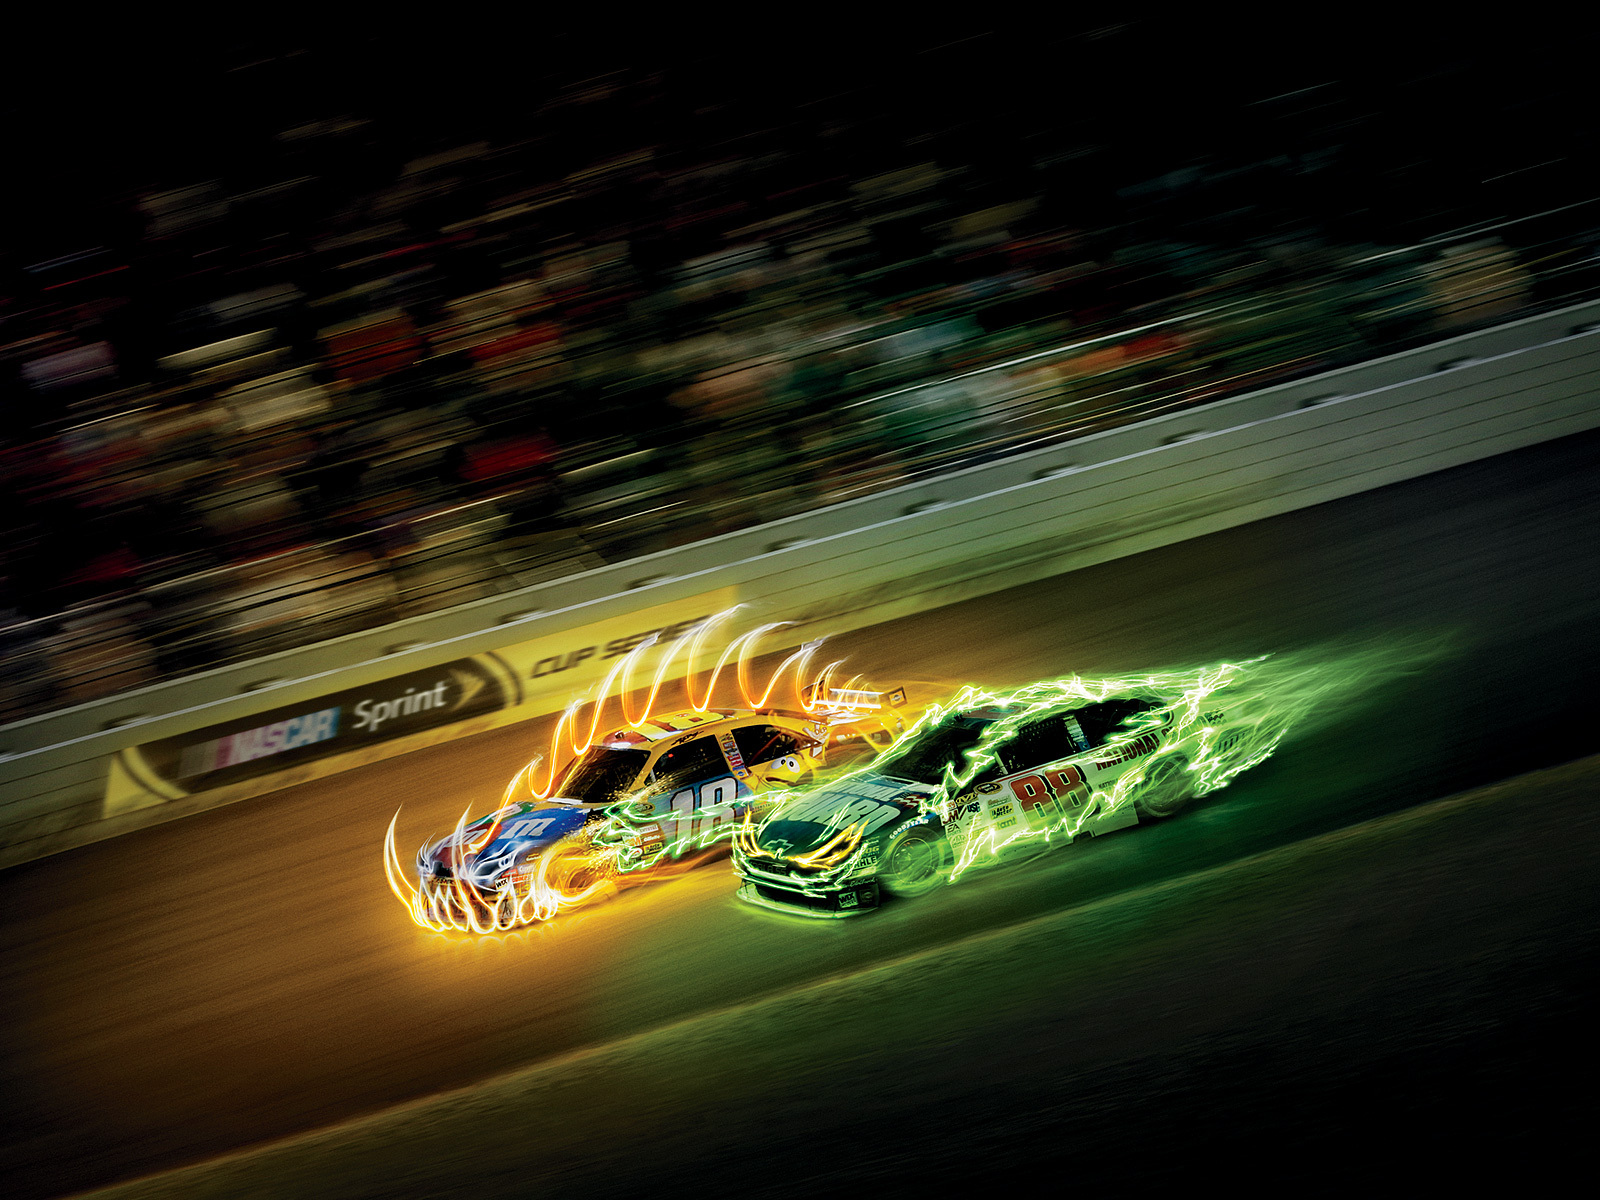 Hd Nascar Wallpapers Auto Sports Hd Car Wallpapers Automotive